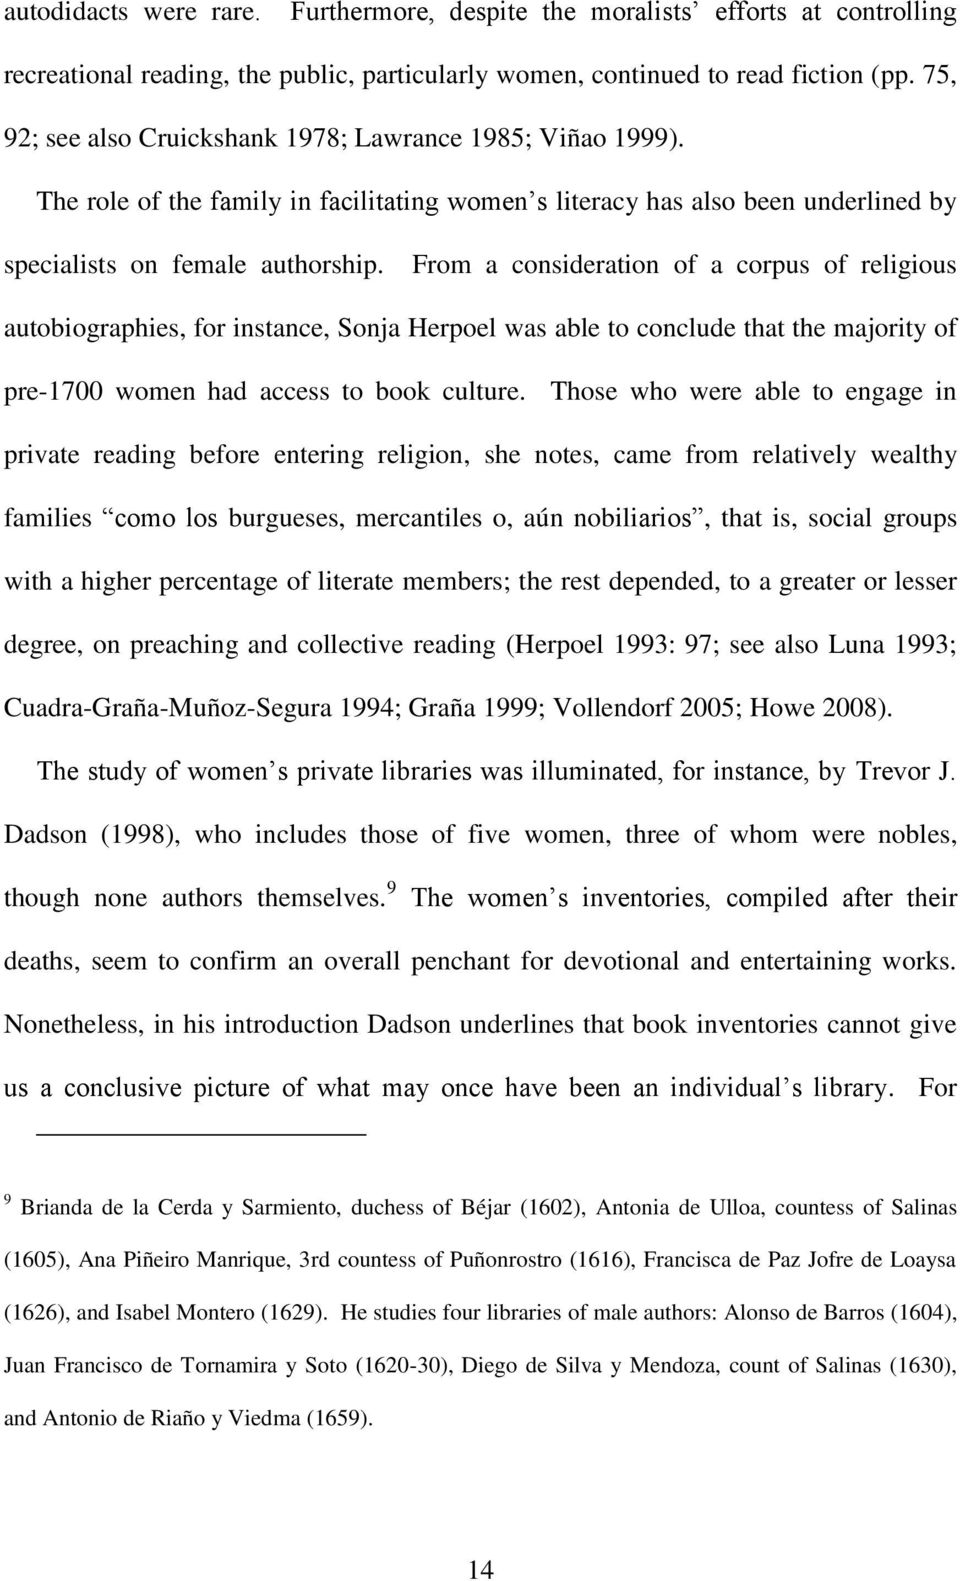 From a consideration of a corpus of religious autobiographies, for instance, Sonja Herpoel was able to conclude that the majority of pre-1700 women had access to book culture.